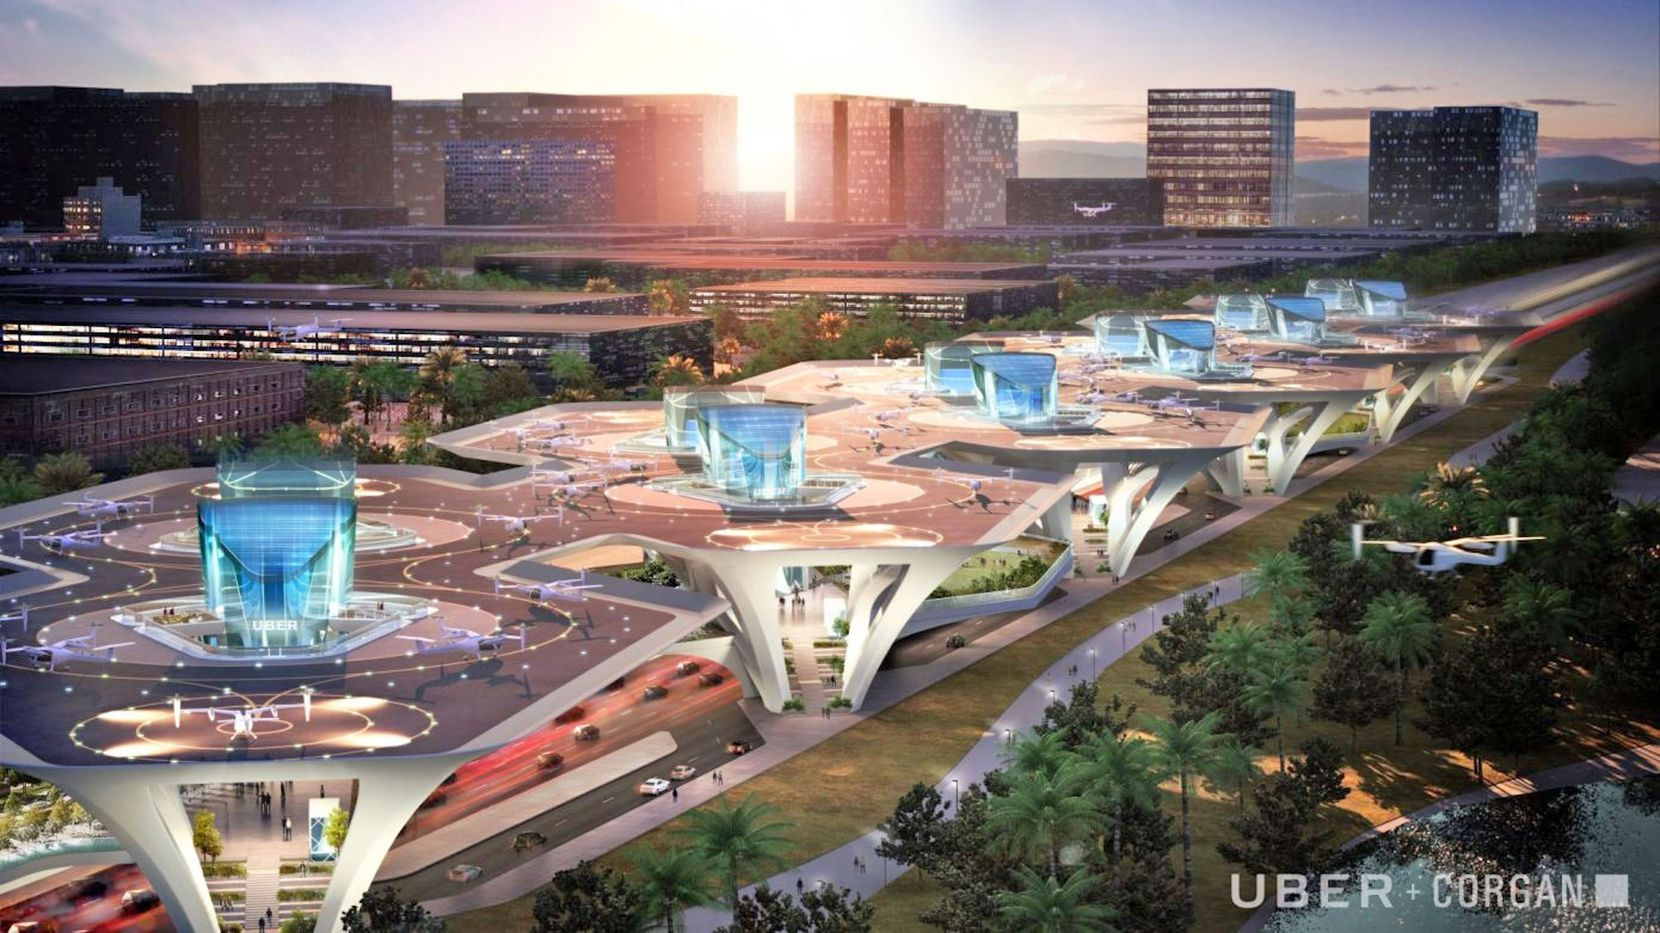 A design concept from Dallas architect Corgan for an Uber flying vehicle terminal.